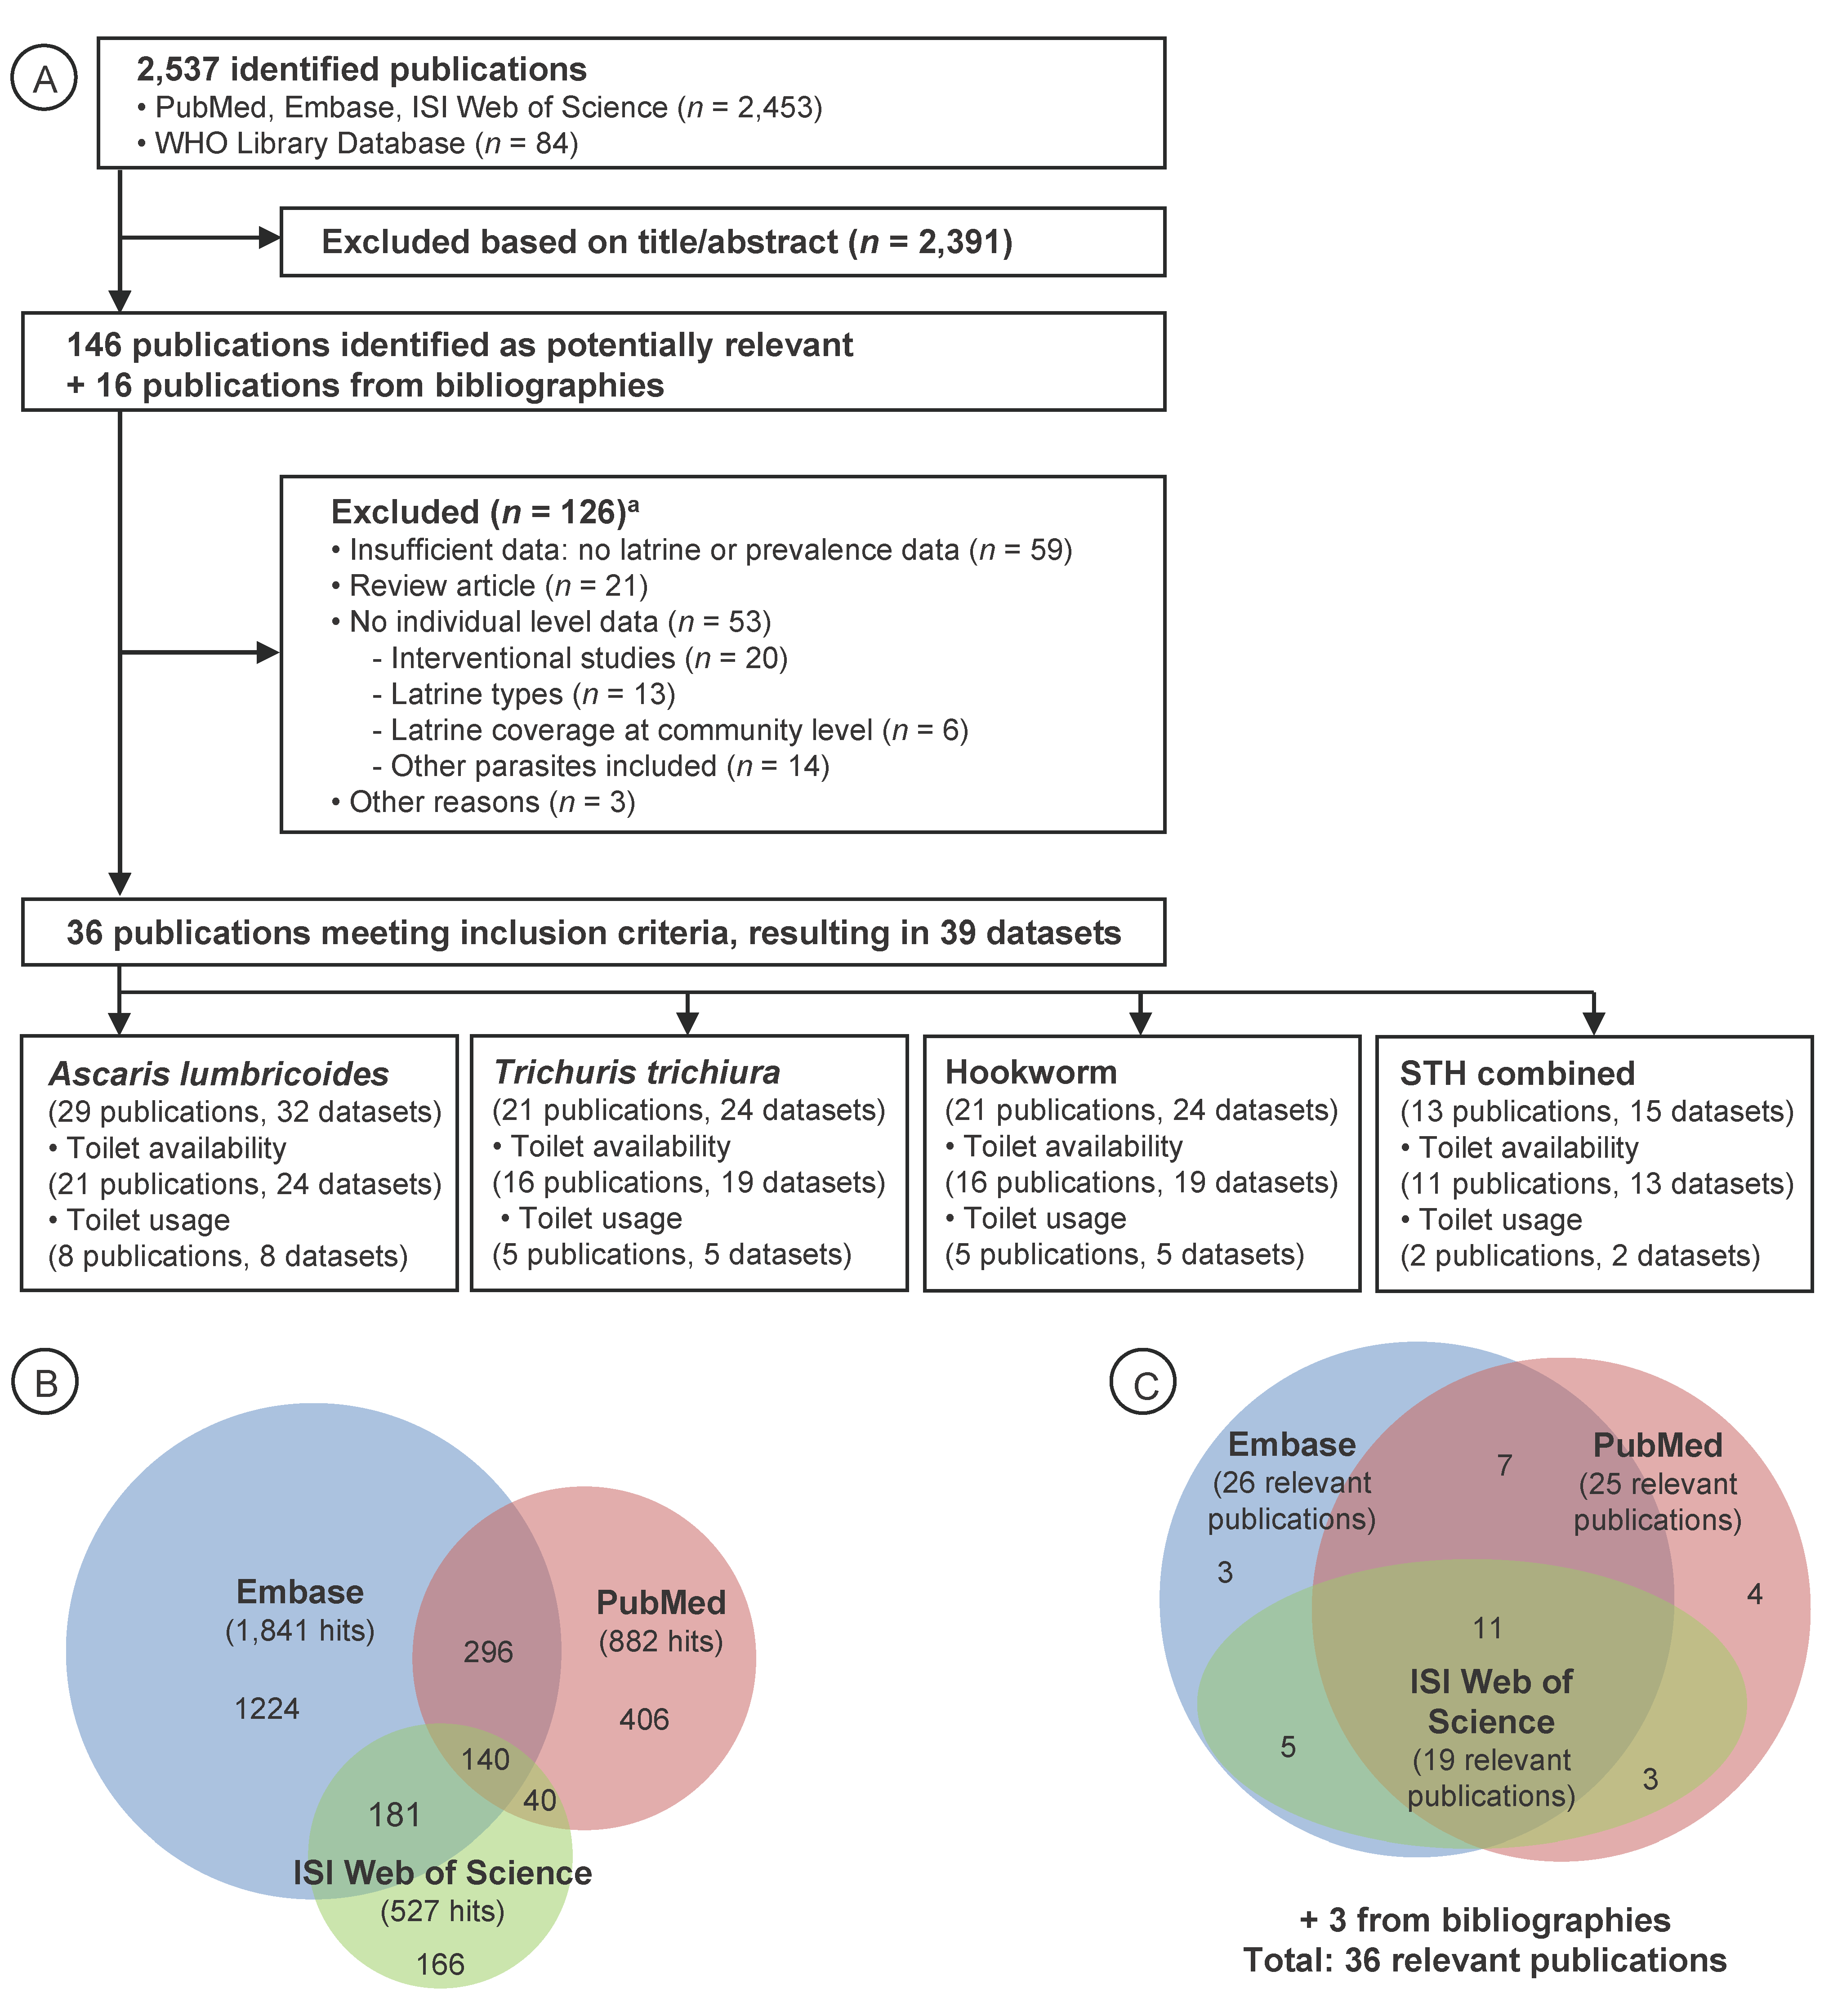 Flowchart visualizing the procedure for identifying relevant publications.